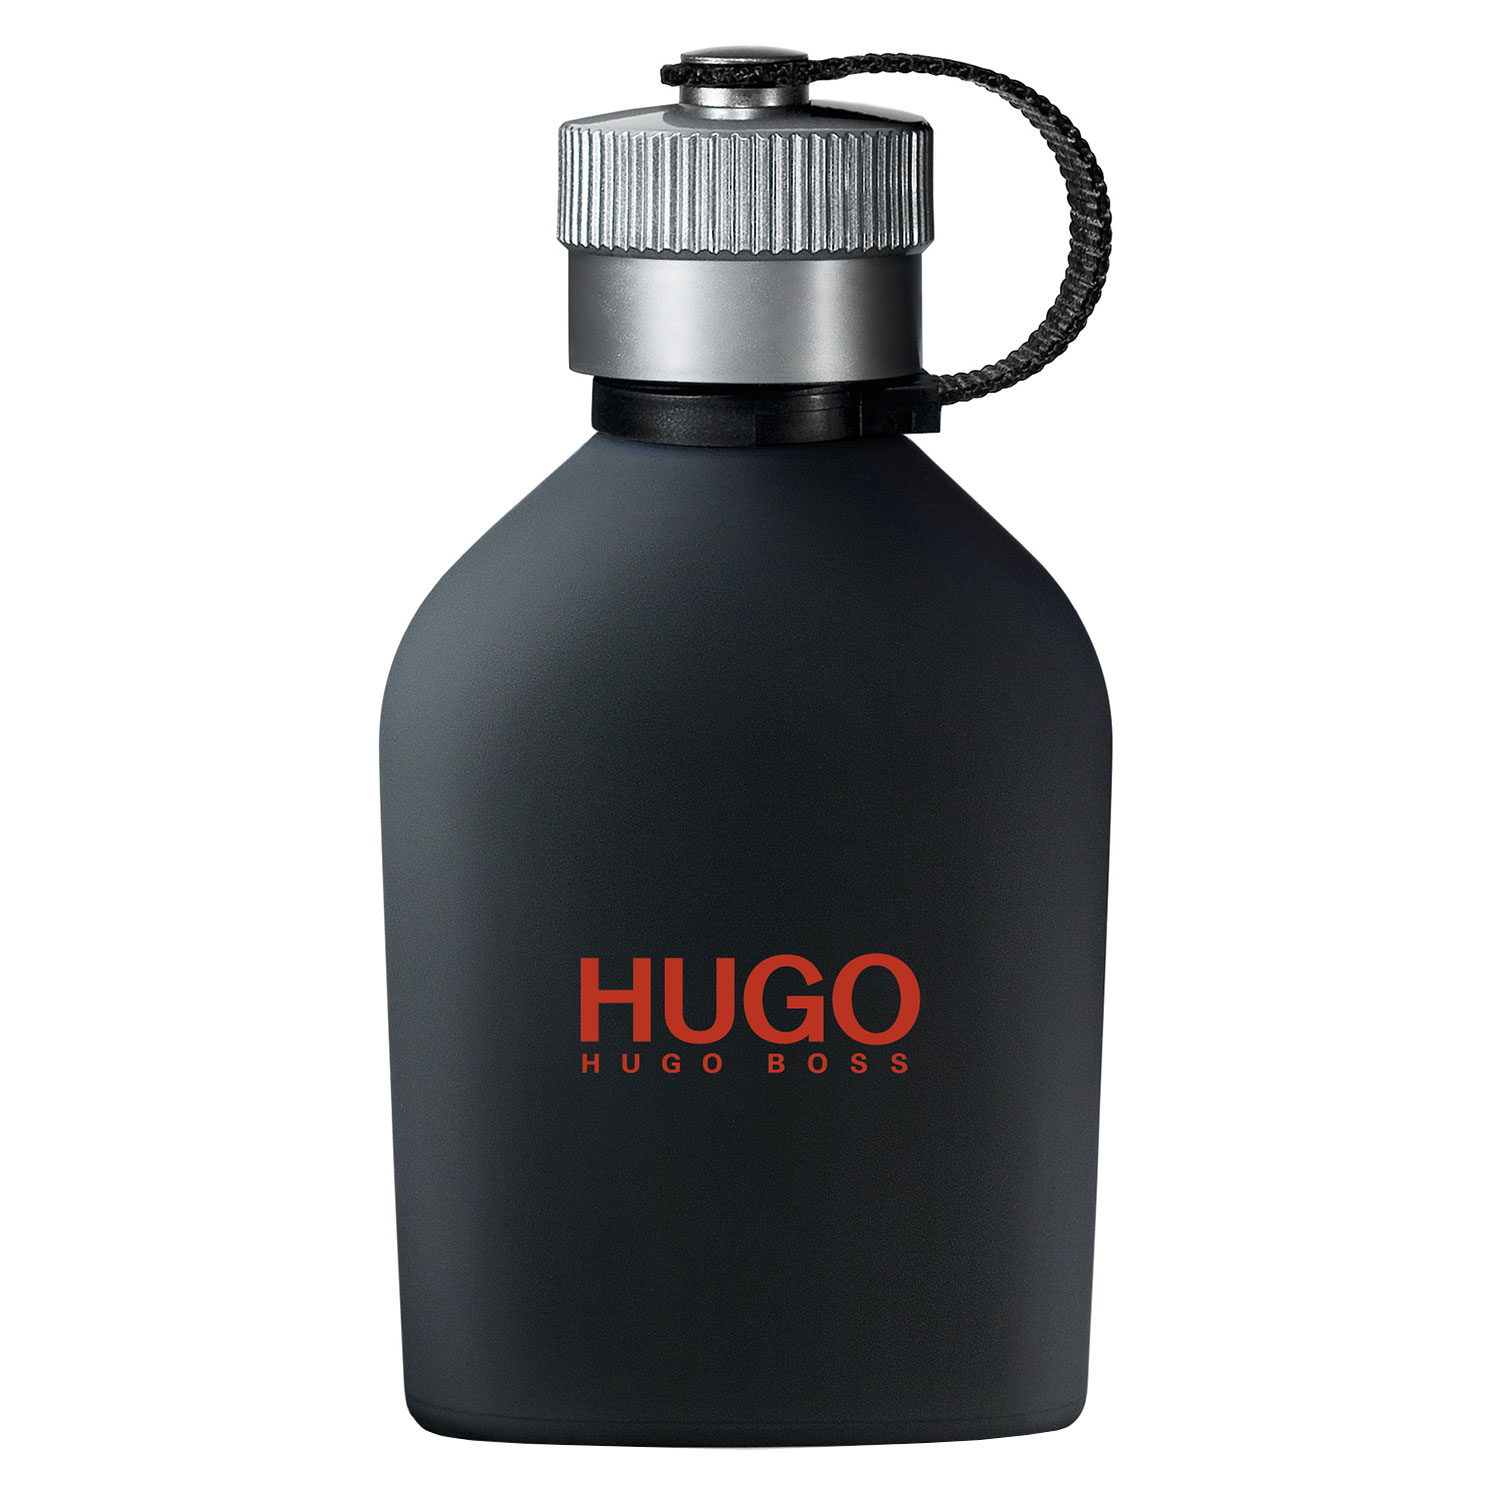 Hugo - Just Different Eau de Toilette